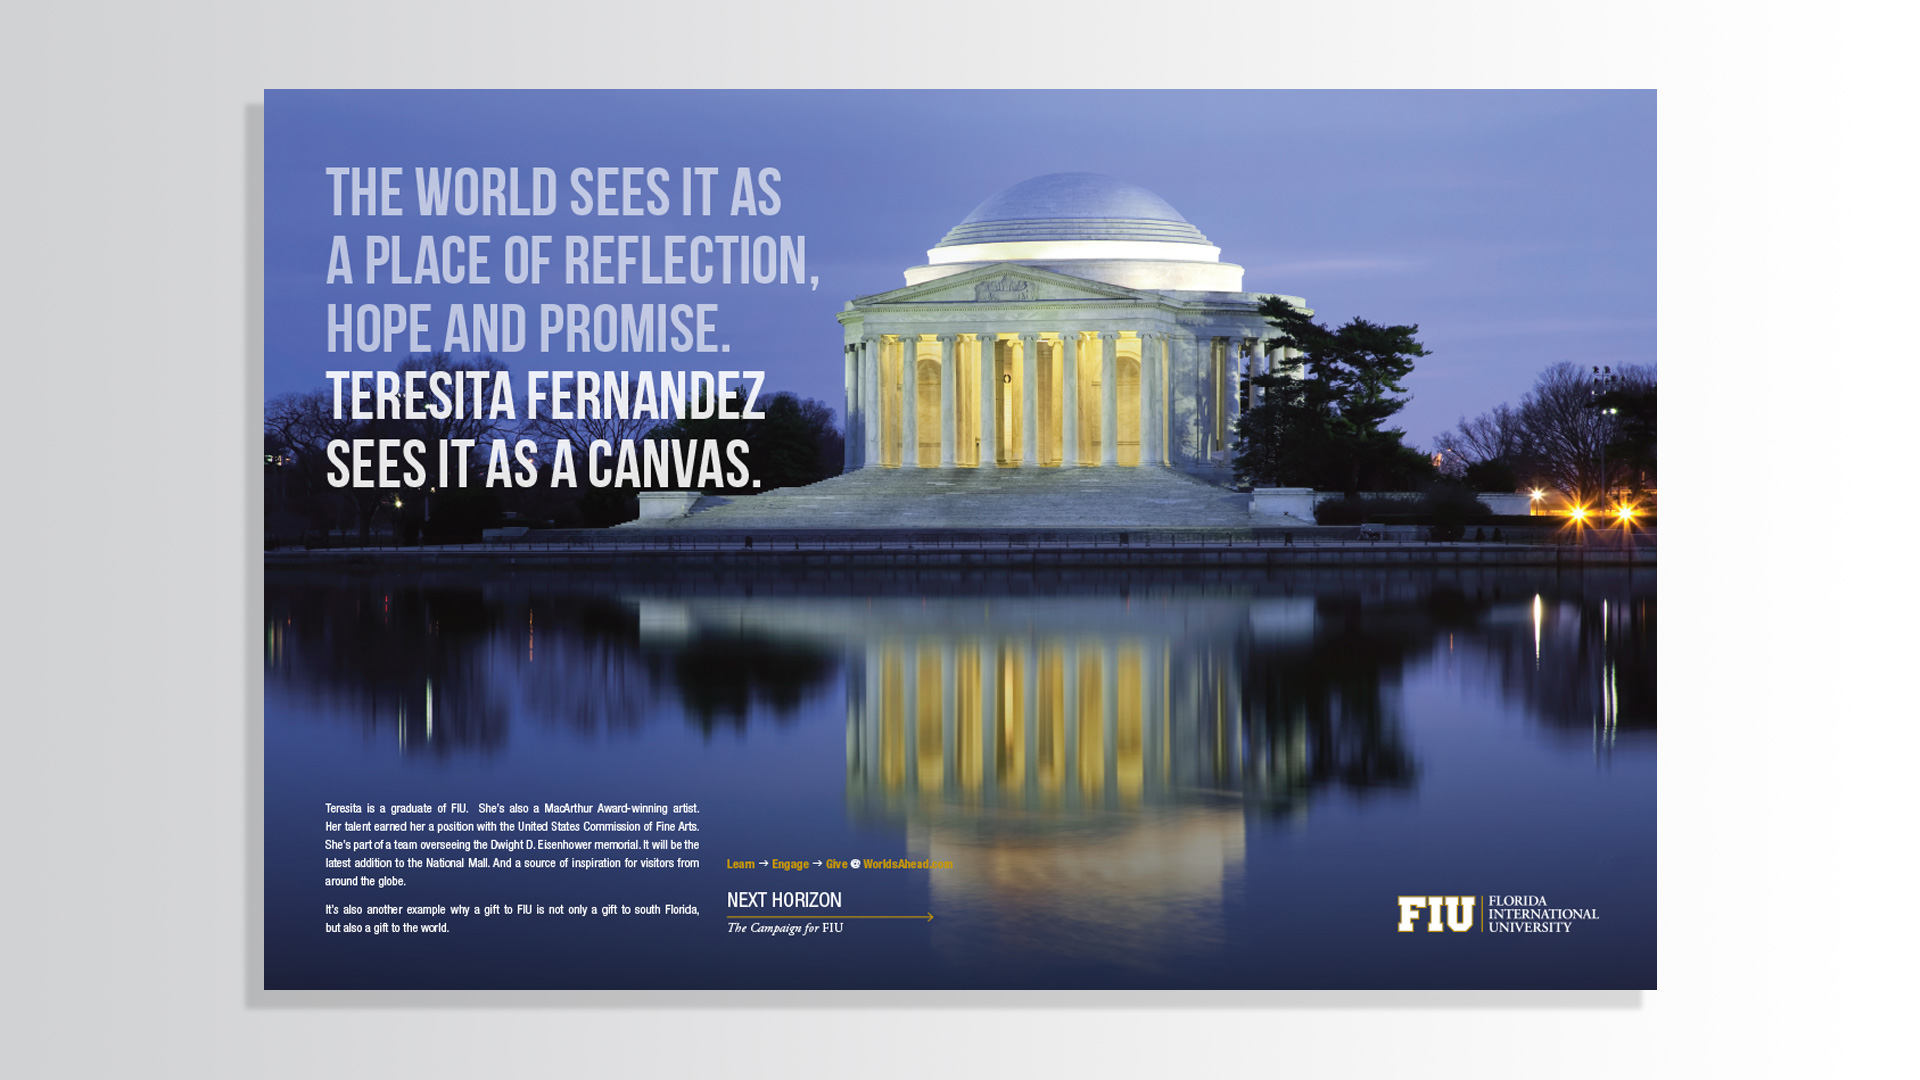 Florida International University Campaign Ad 1